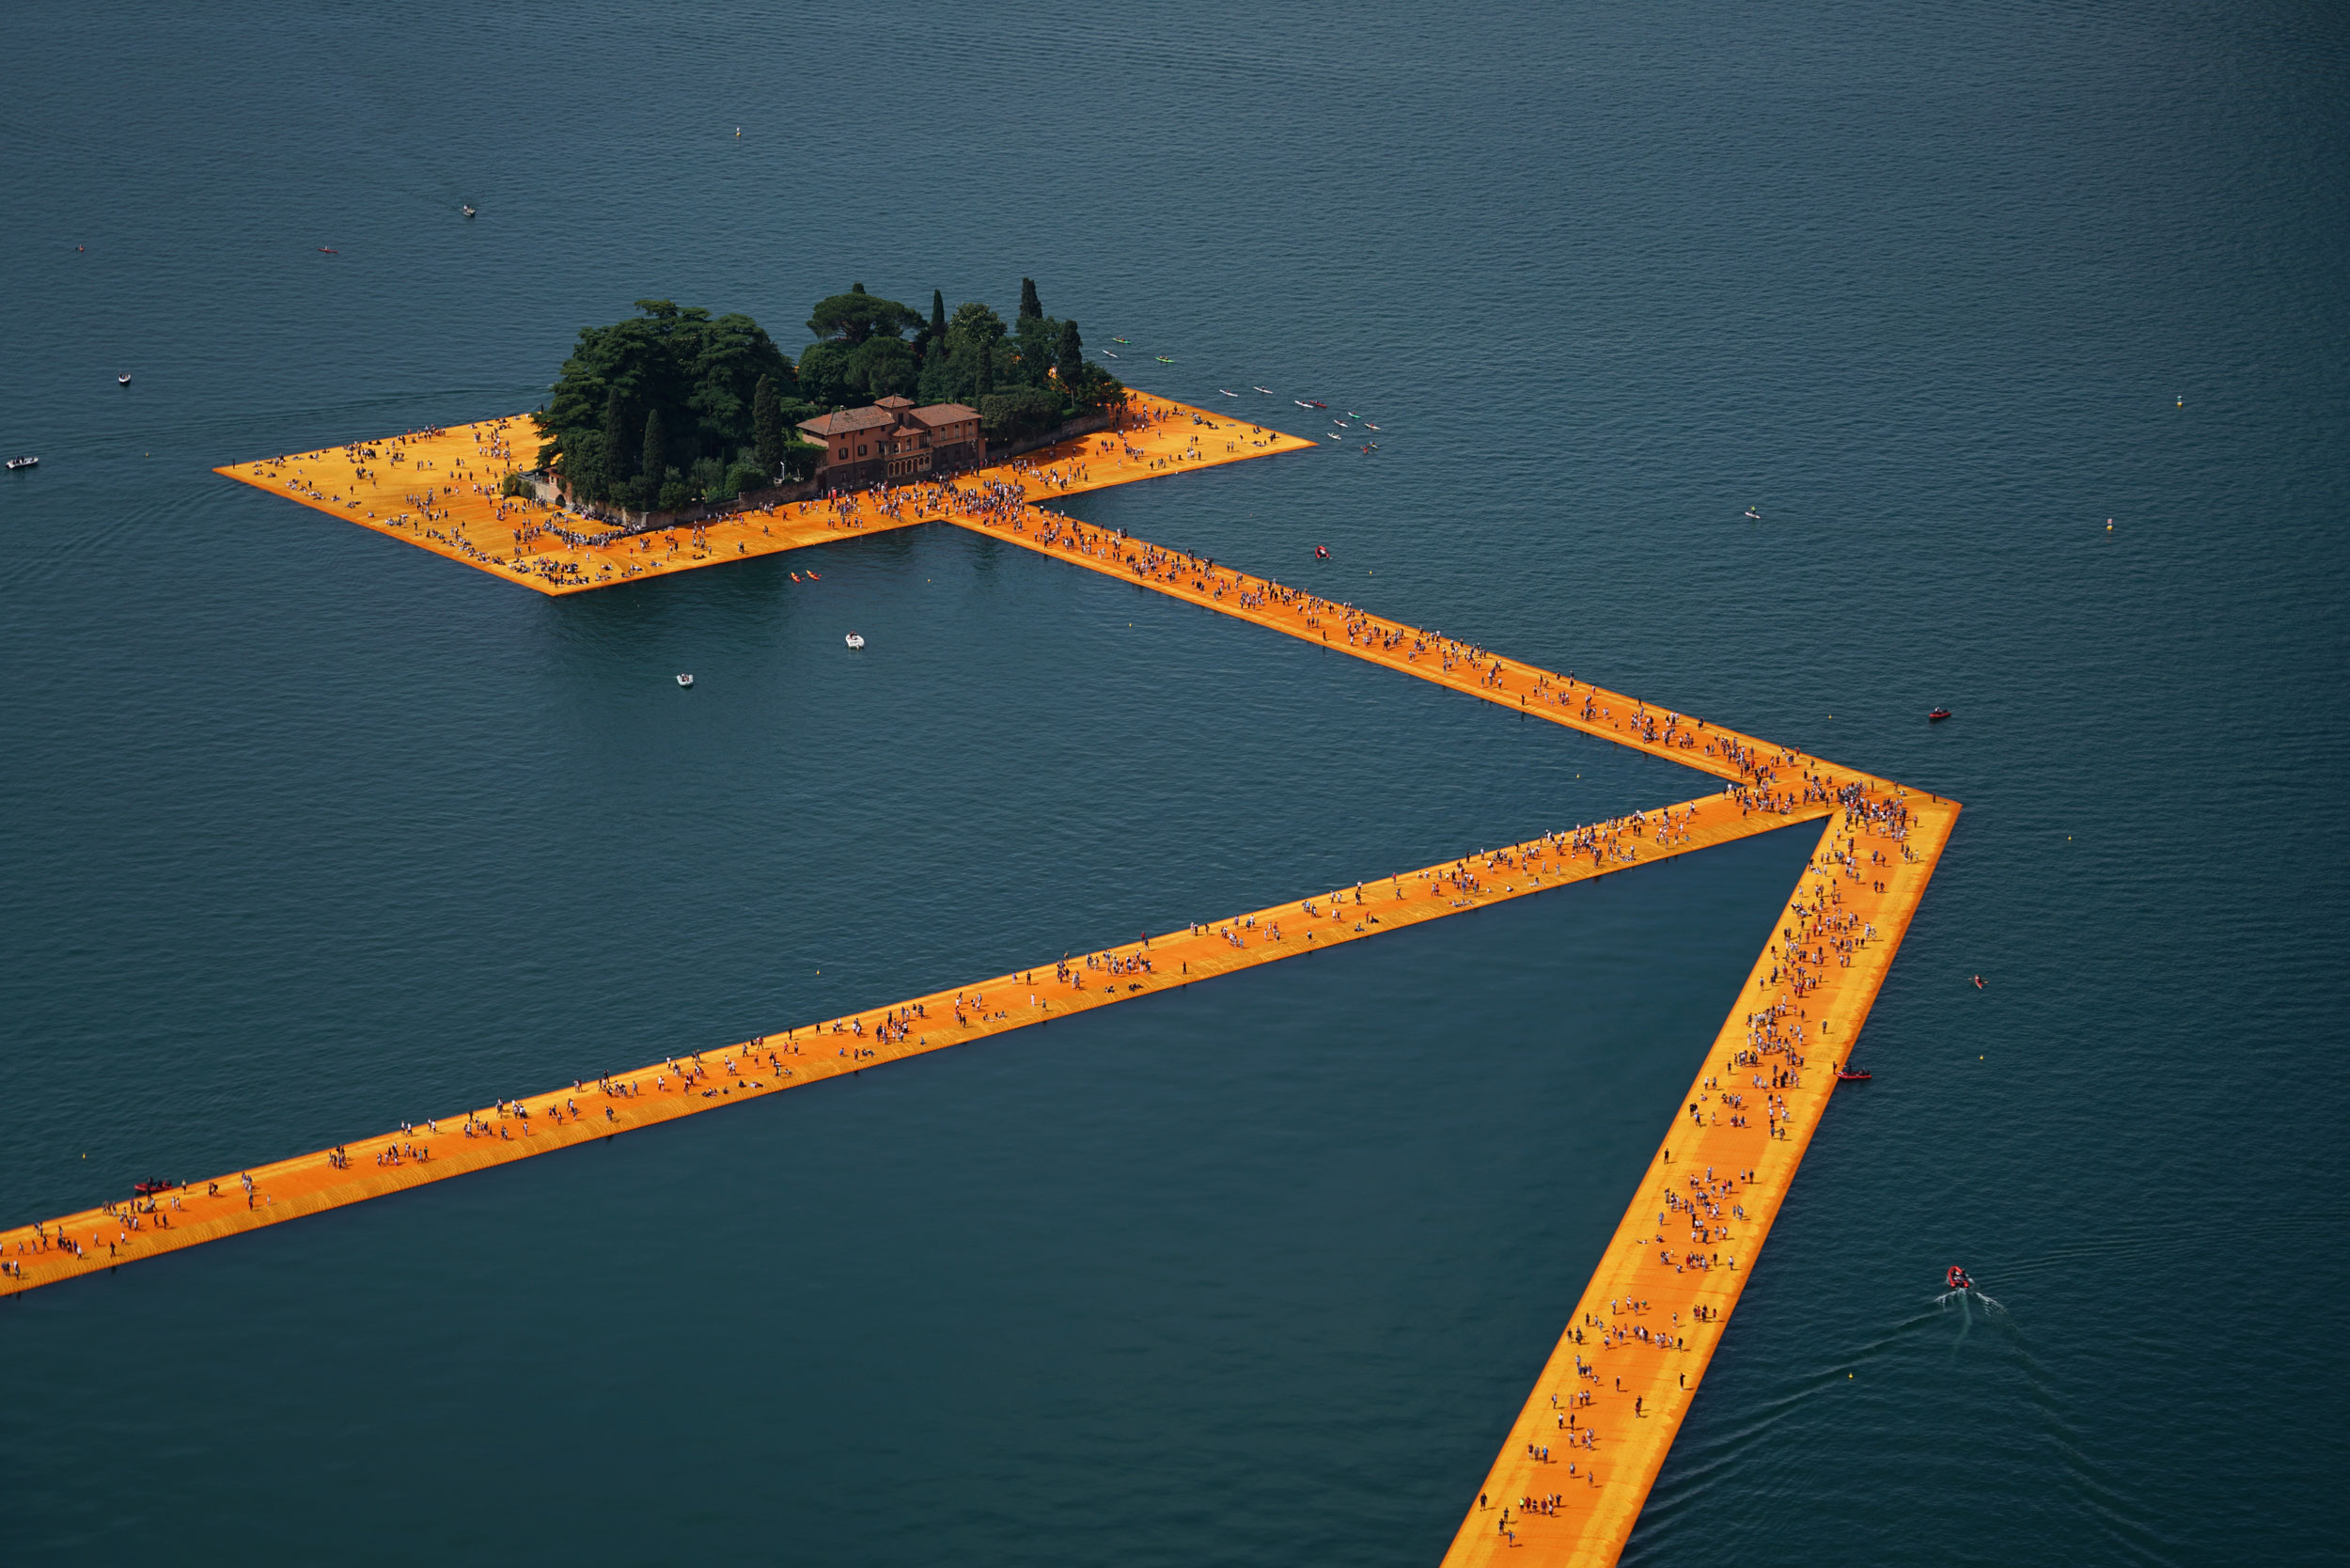 Art Watch: Christo and his Floating Piers